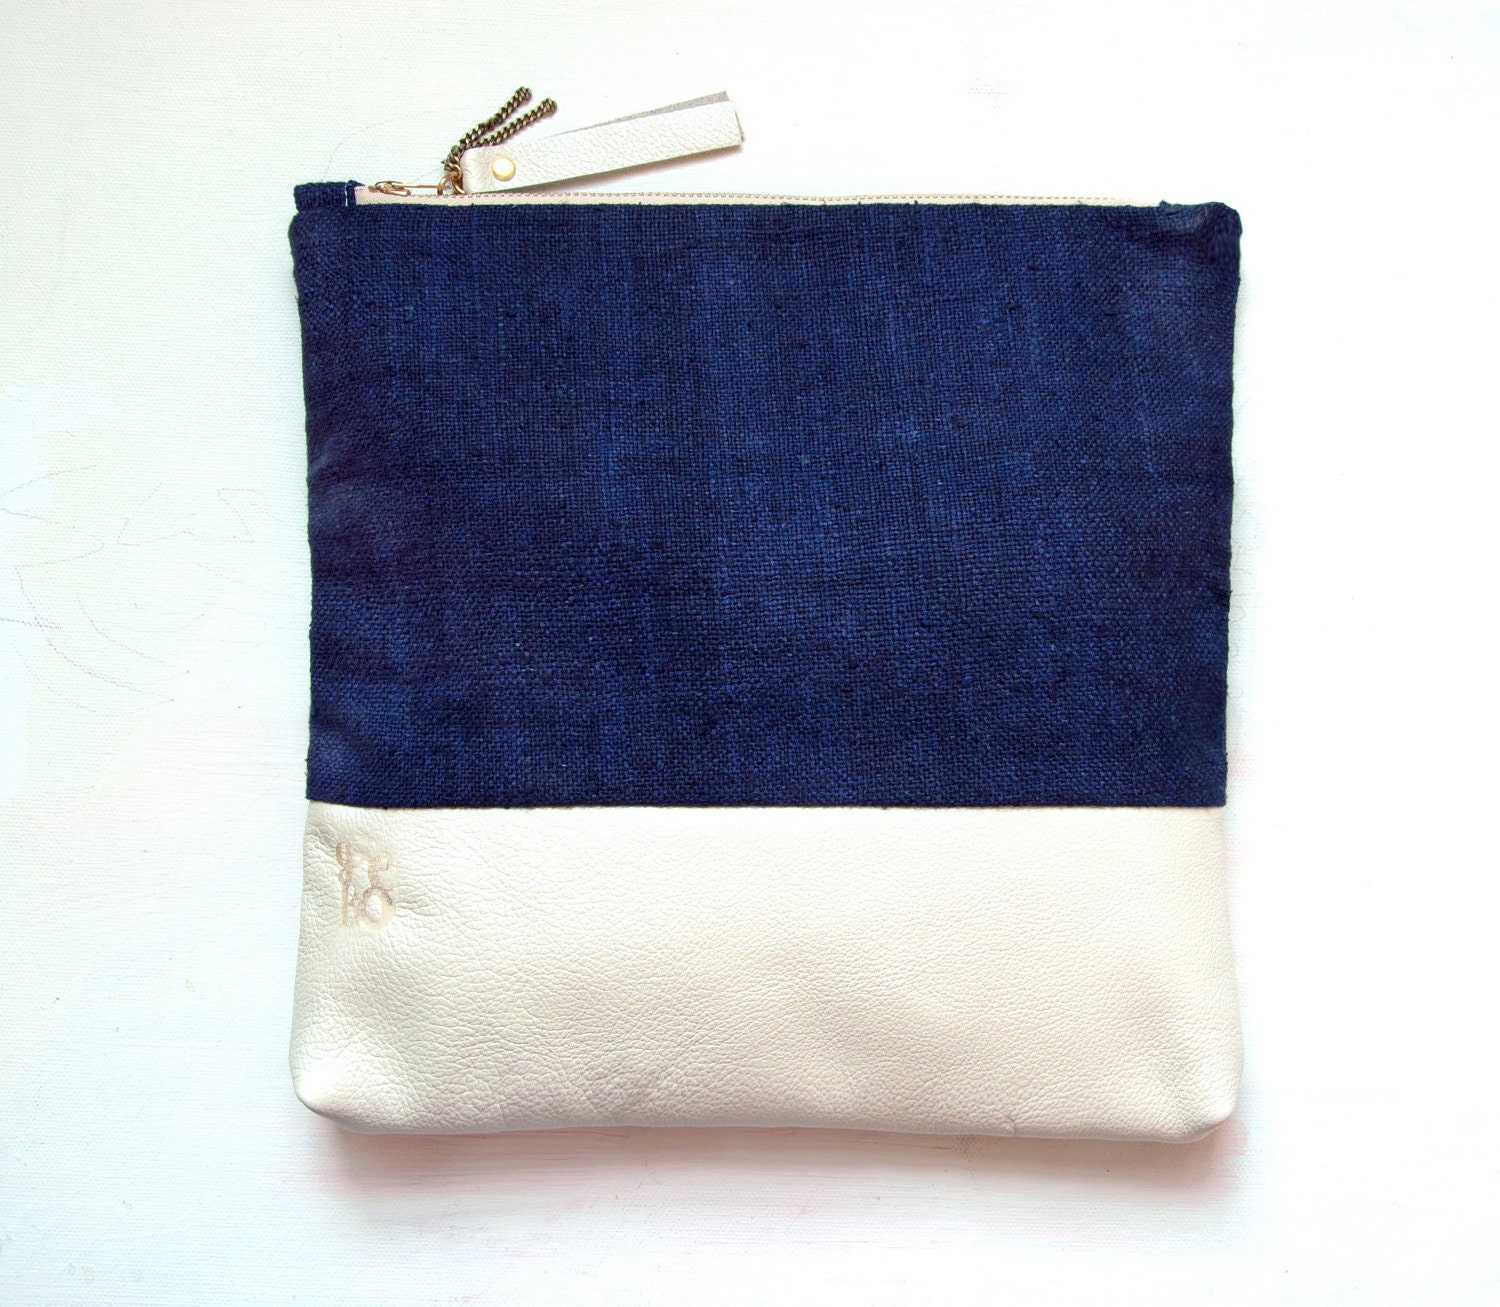 I N D I G O SILK Leather Clutch. Blue and Navy Clutch. Large Make up Bag. Nautical Bag